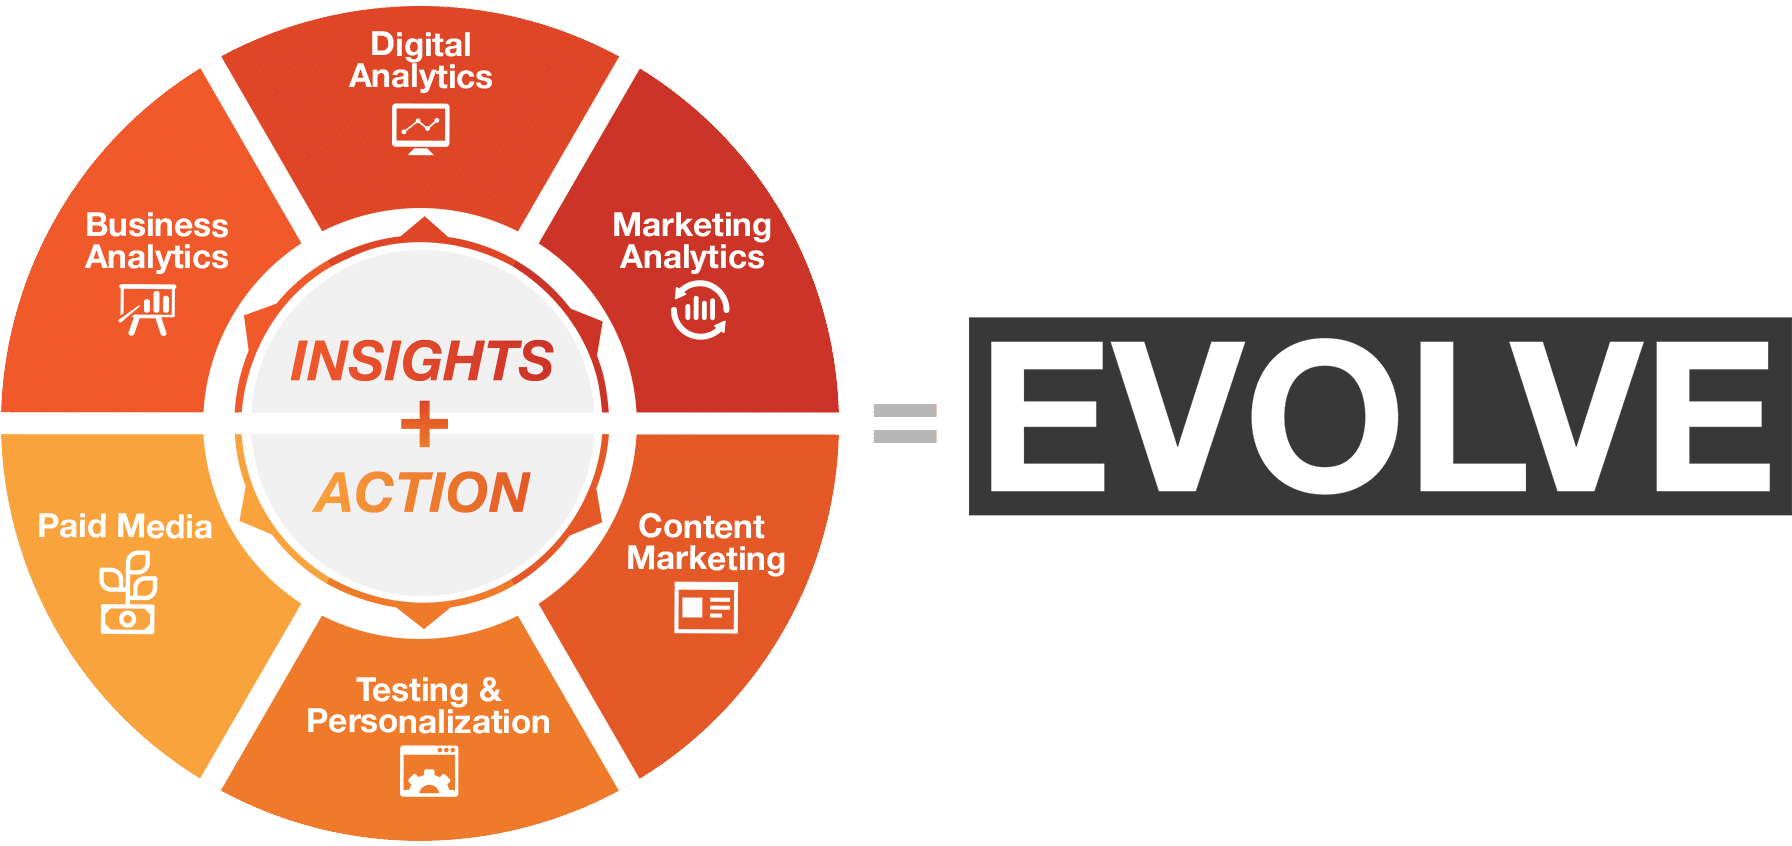 insights and action evolve circular graphic